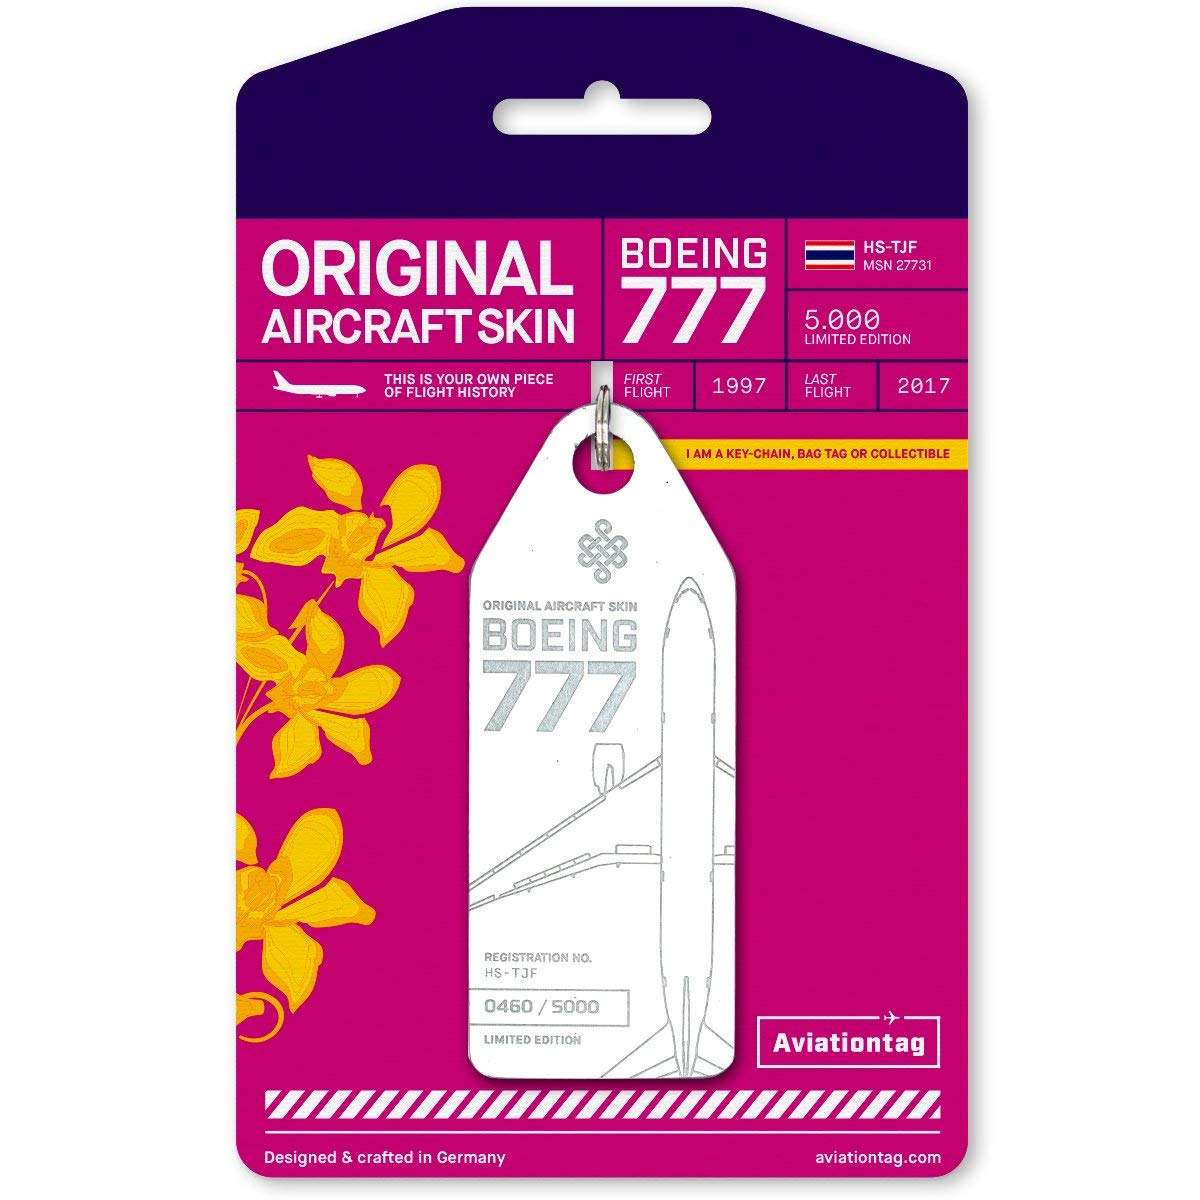 AVT040 AviationTag Boeing 777-200 Reg #HS-TJF (Thai Airways) White Original Aircraft Skin Keychain/Luggage Tag/Etc with Lost & Found Feature by AviationTag